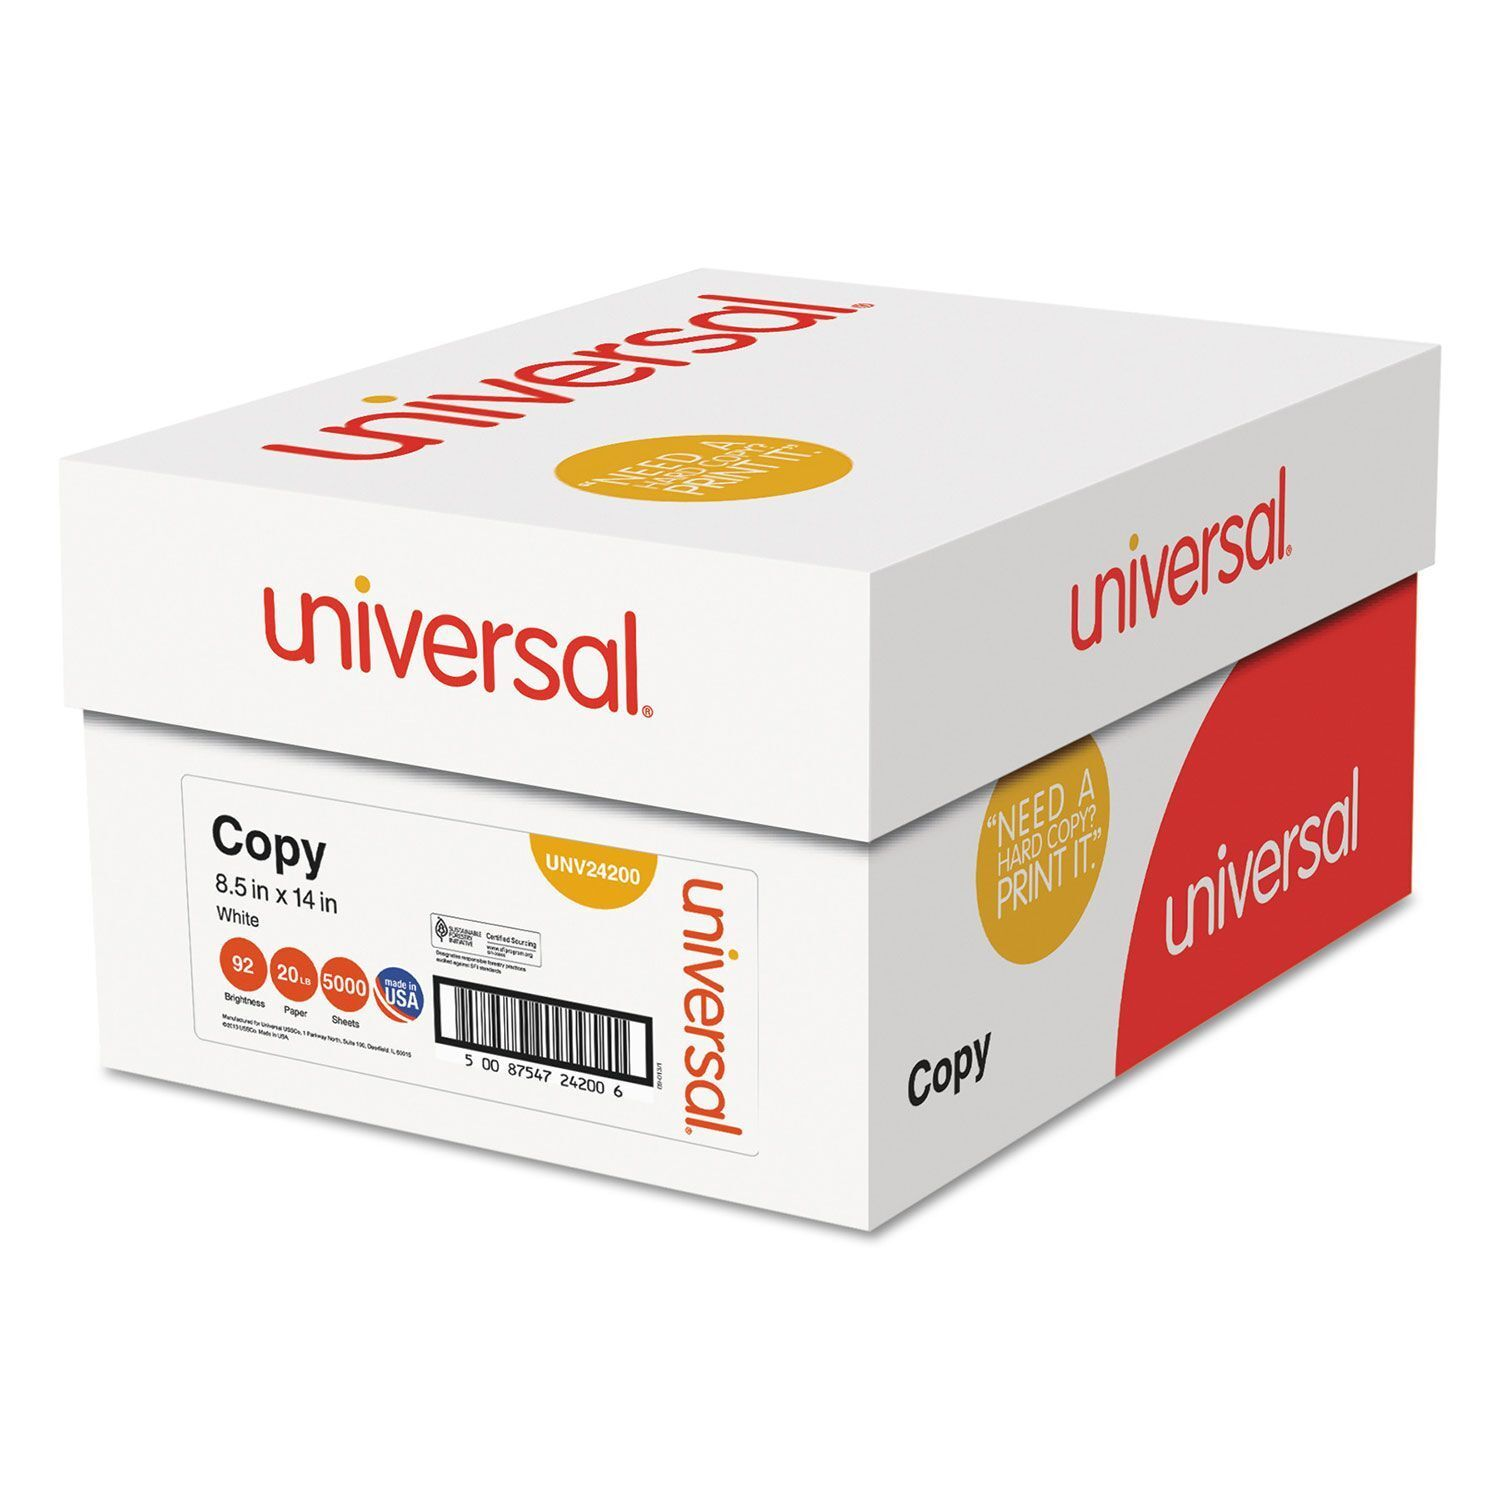 Universal Legal Size 20lb Copy Paper 92 Bright - 5000 Sheet Case